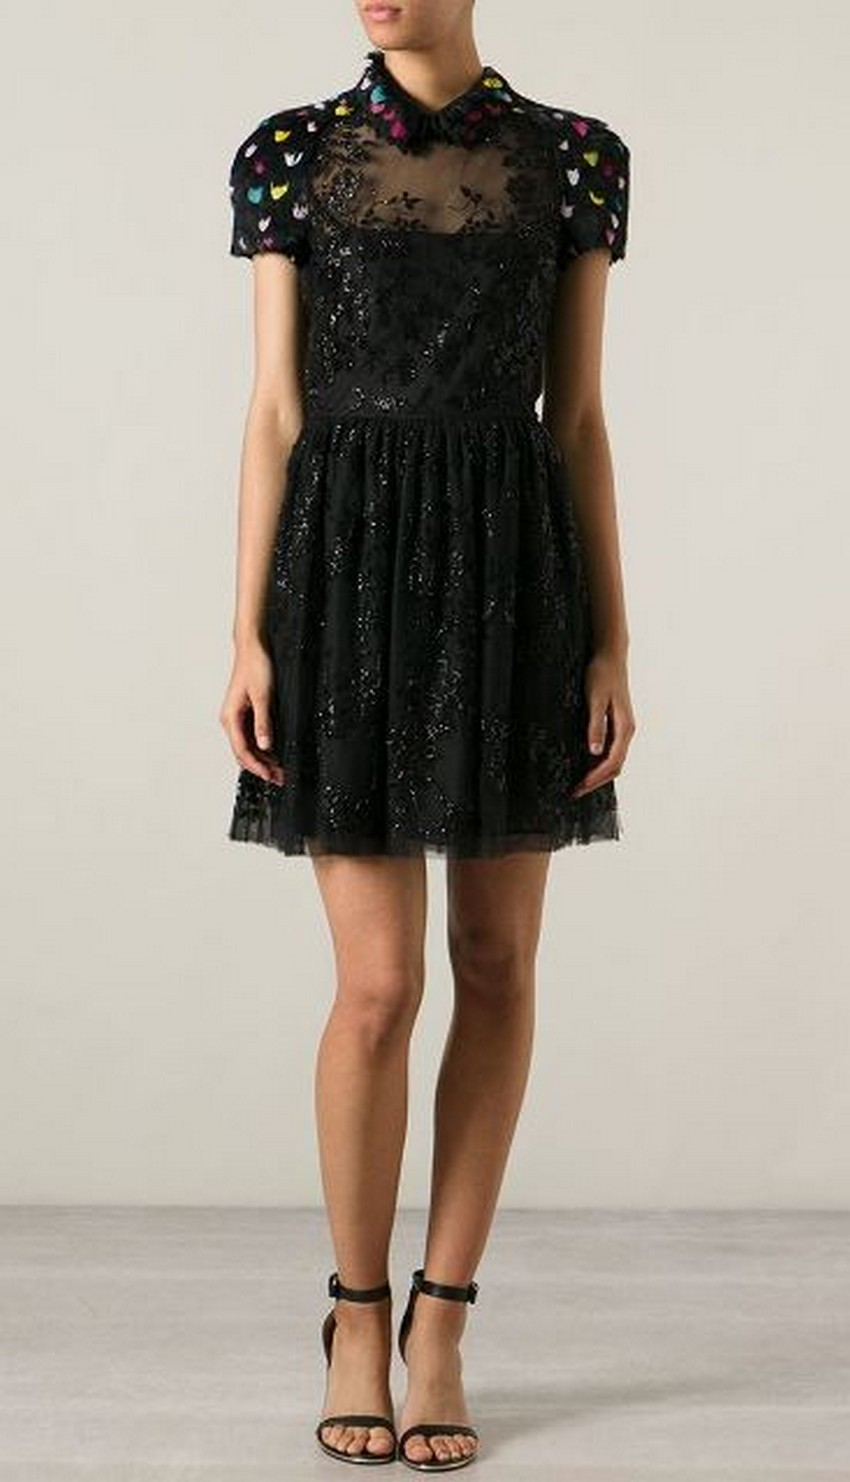 0e3b4934a1b Feather and Bead-embellished Dress - Price   10